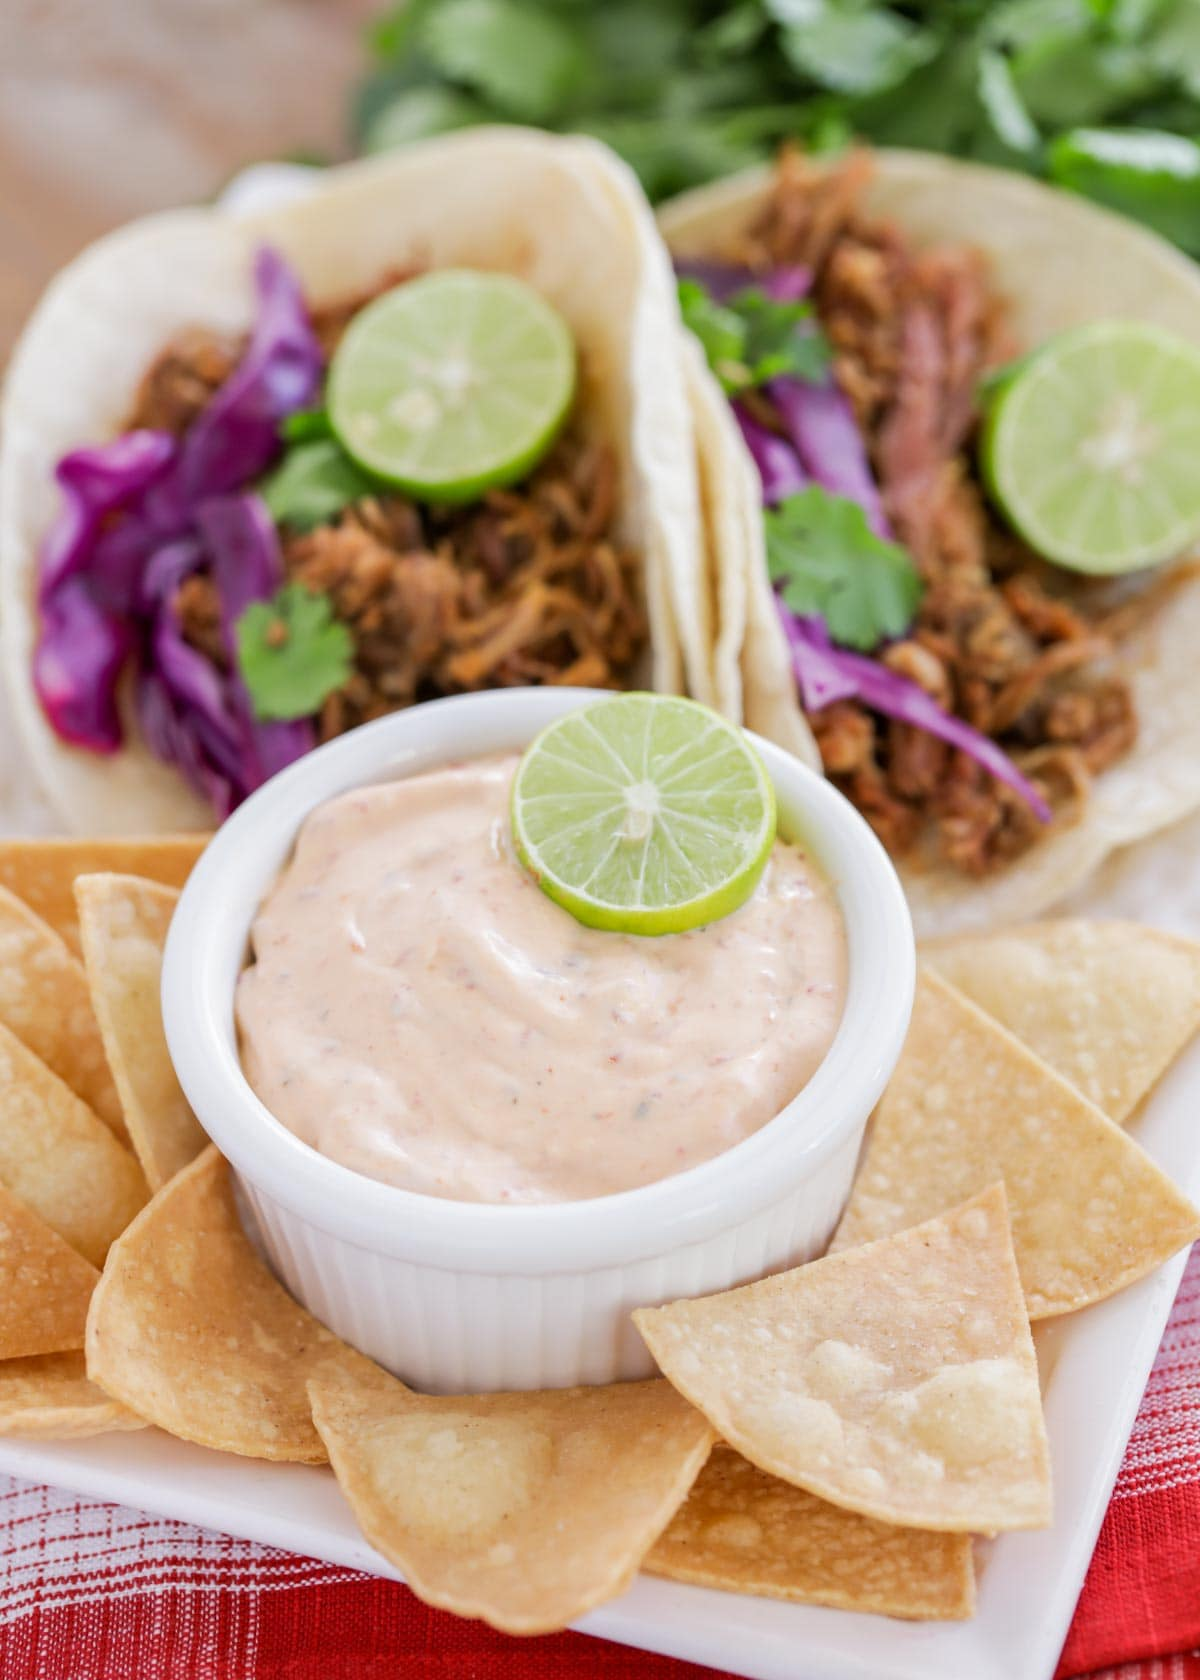 Chipotle ranch served with tortilla chips and tacos